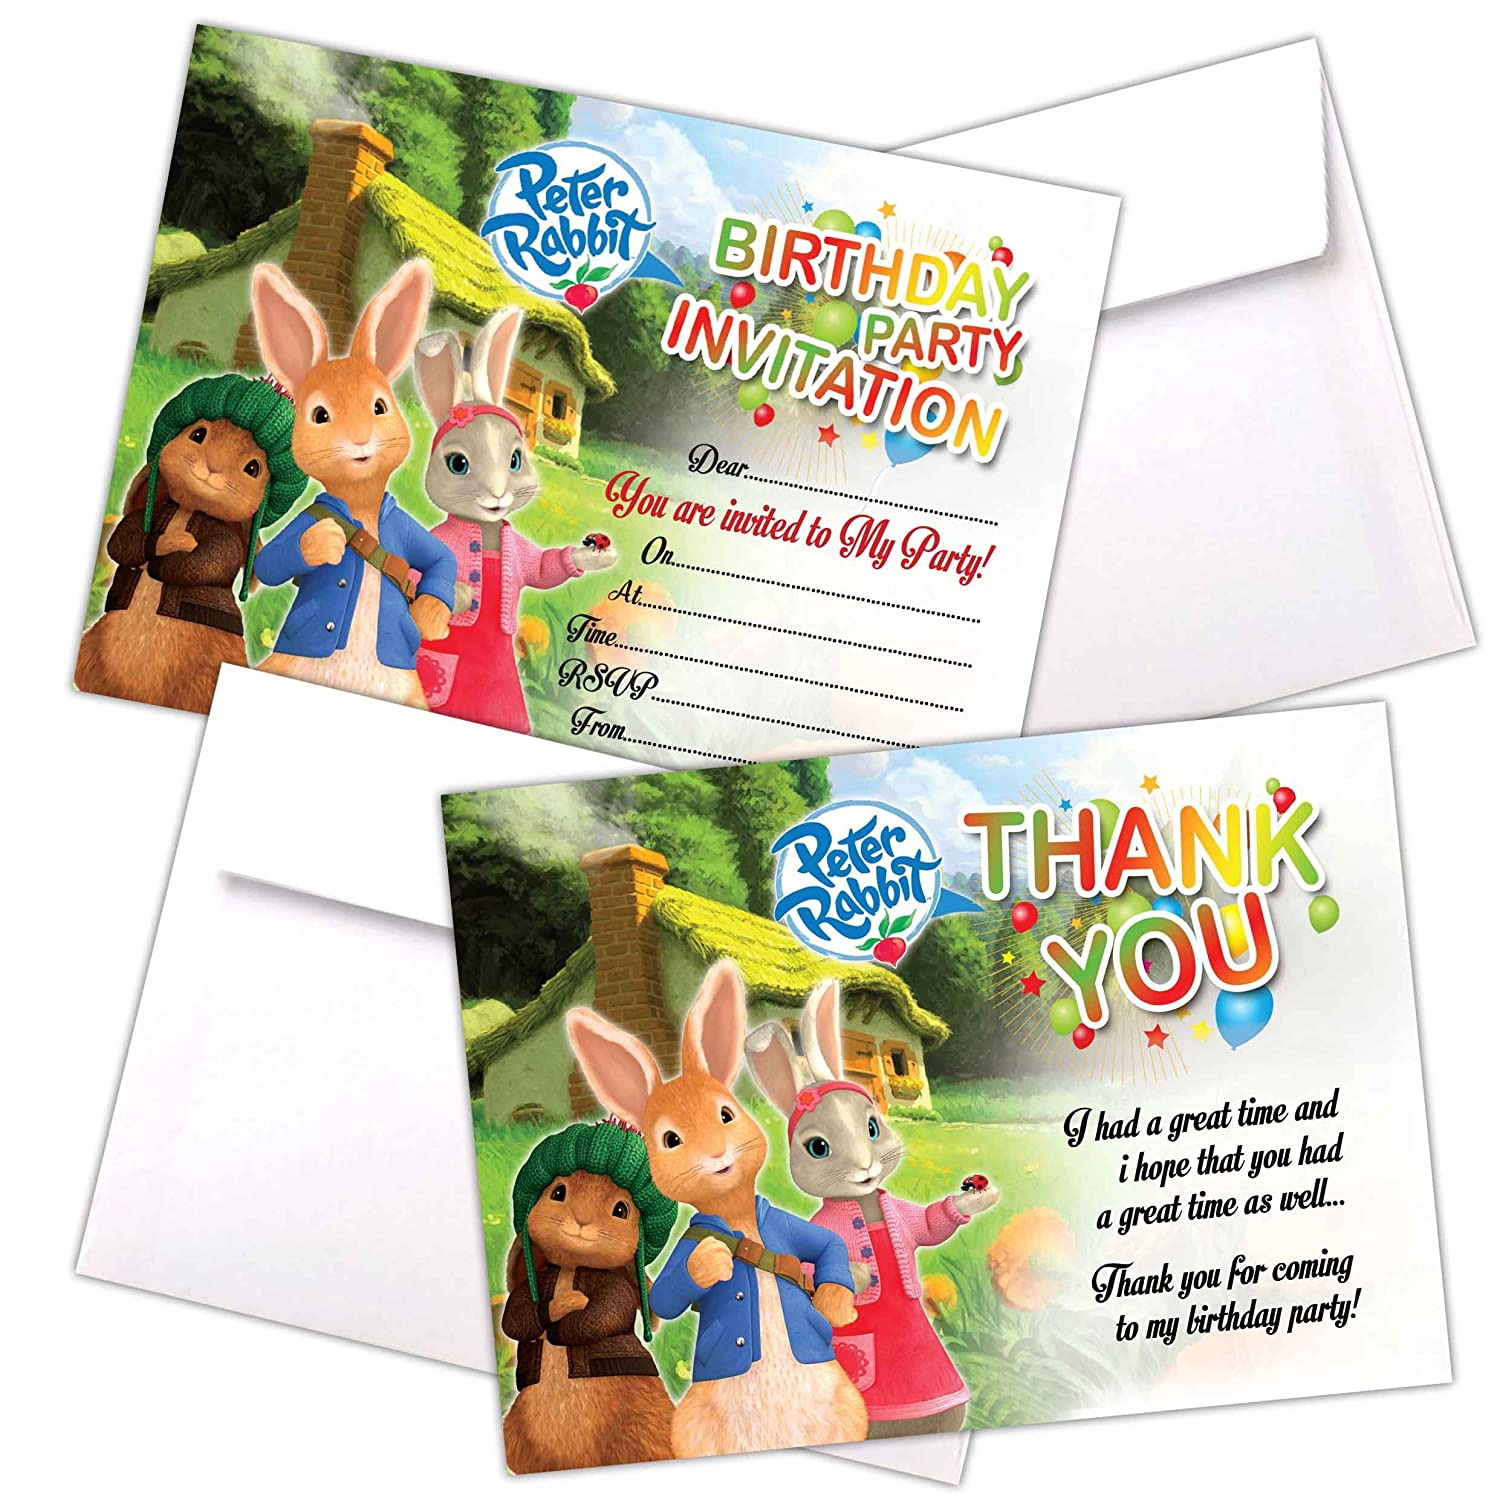 20 x Peter Rabbit | Girls Kids Birthday Party Invitations | Invites Cards | Girls Boys Children Party Cards | with C6 Envelopes Option | With Thank You Cards Option (Only Invites) Eli Belinde